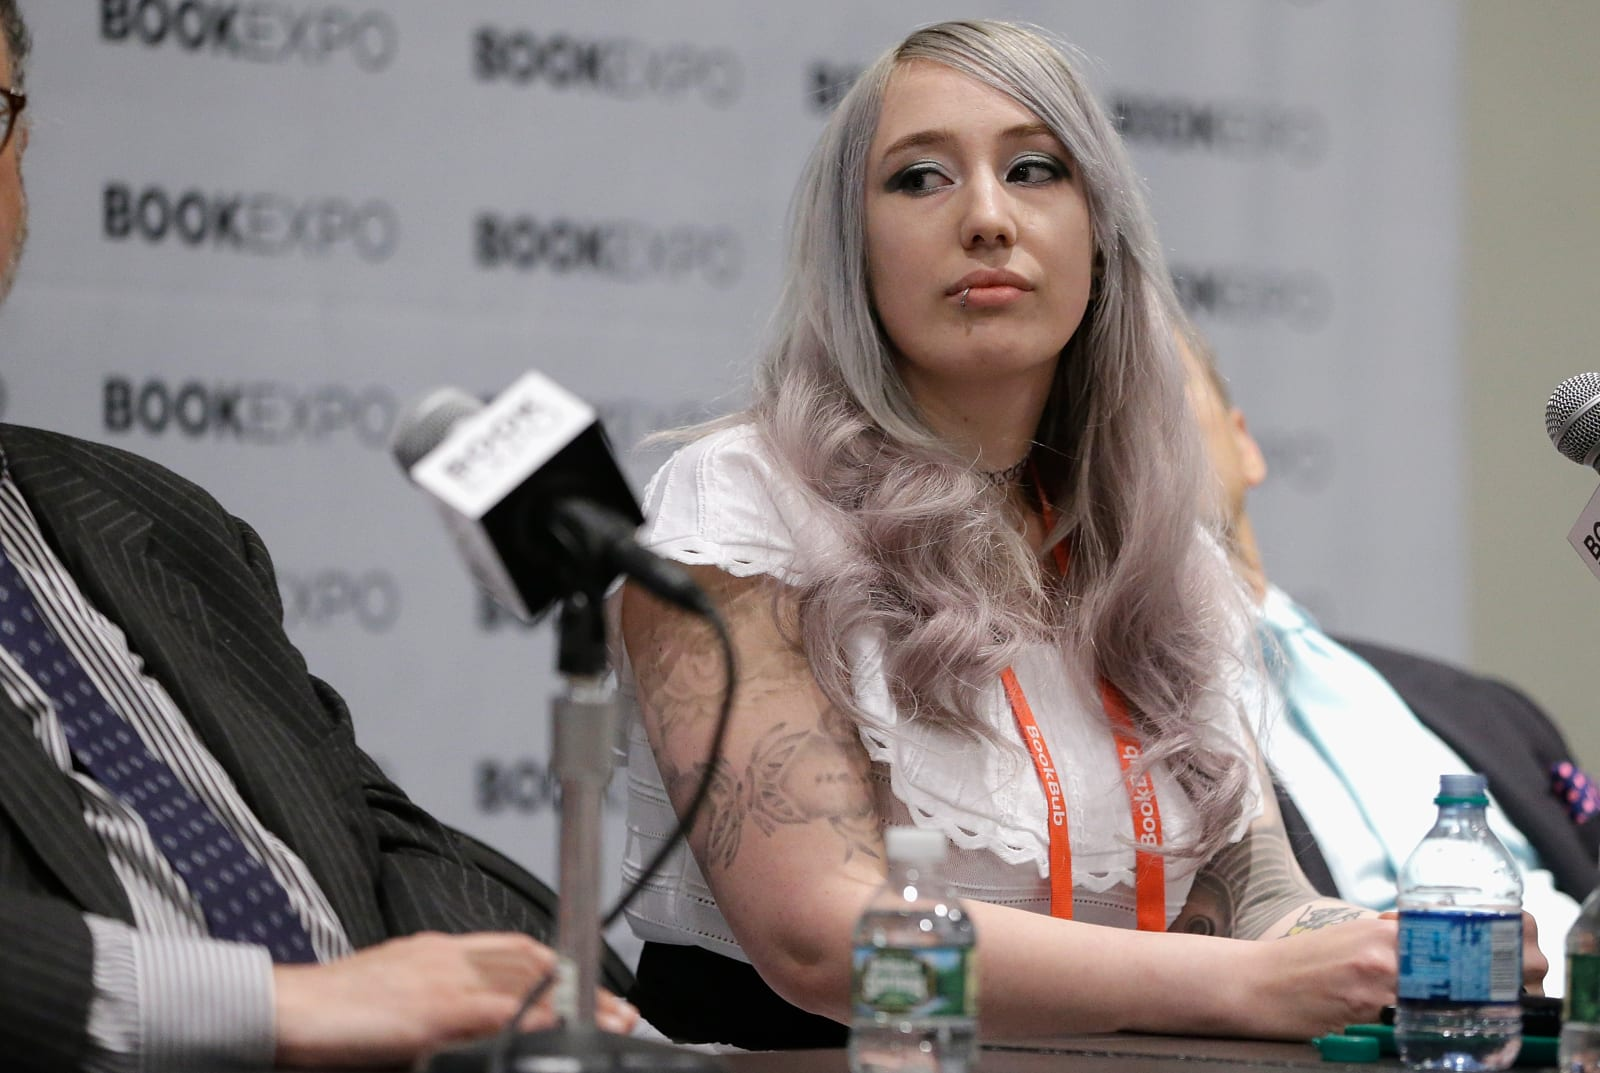 Emerging from the shadow of GamerGate